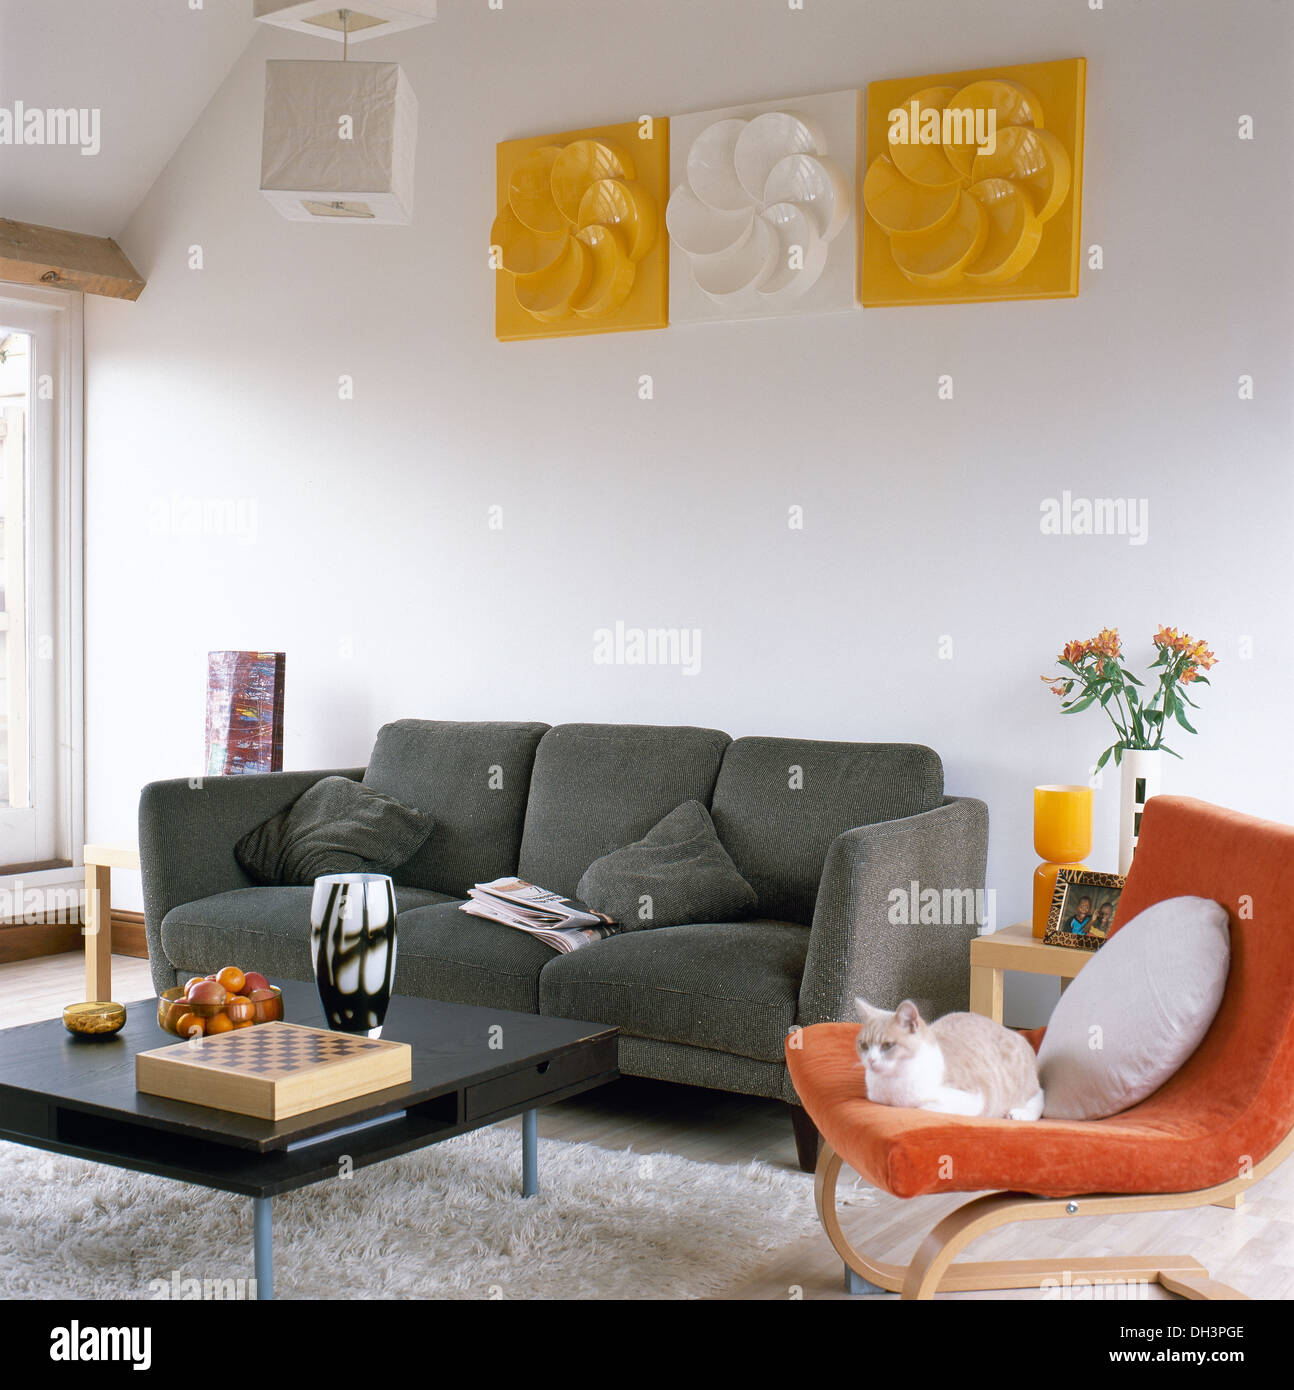 Plastic Wall Art Above Gray Sofa In Modern Living Room With Black Coffee Table And Orange Canti Levered Chair On Shag Pile Rug